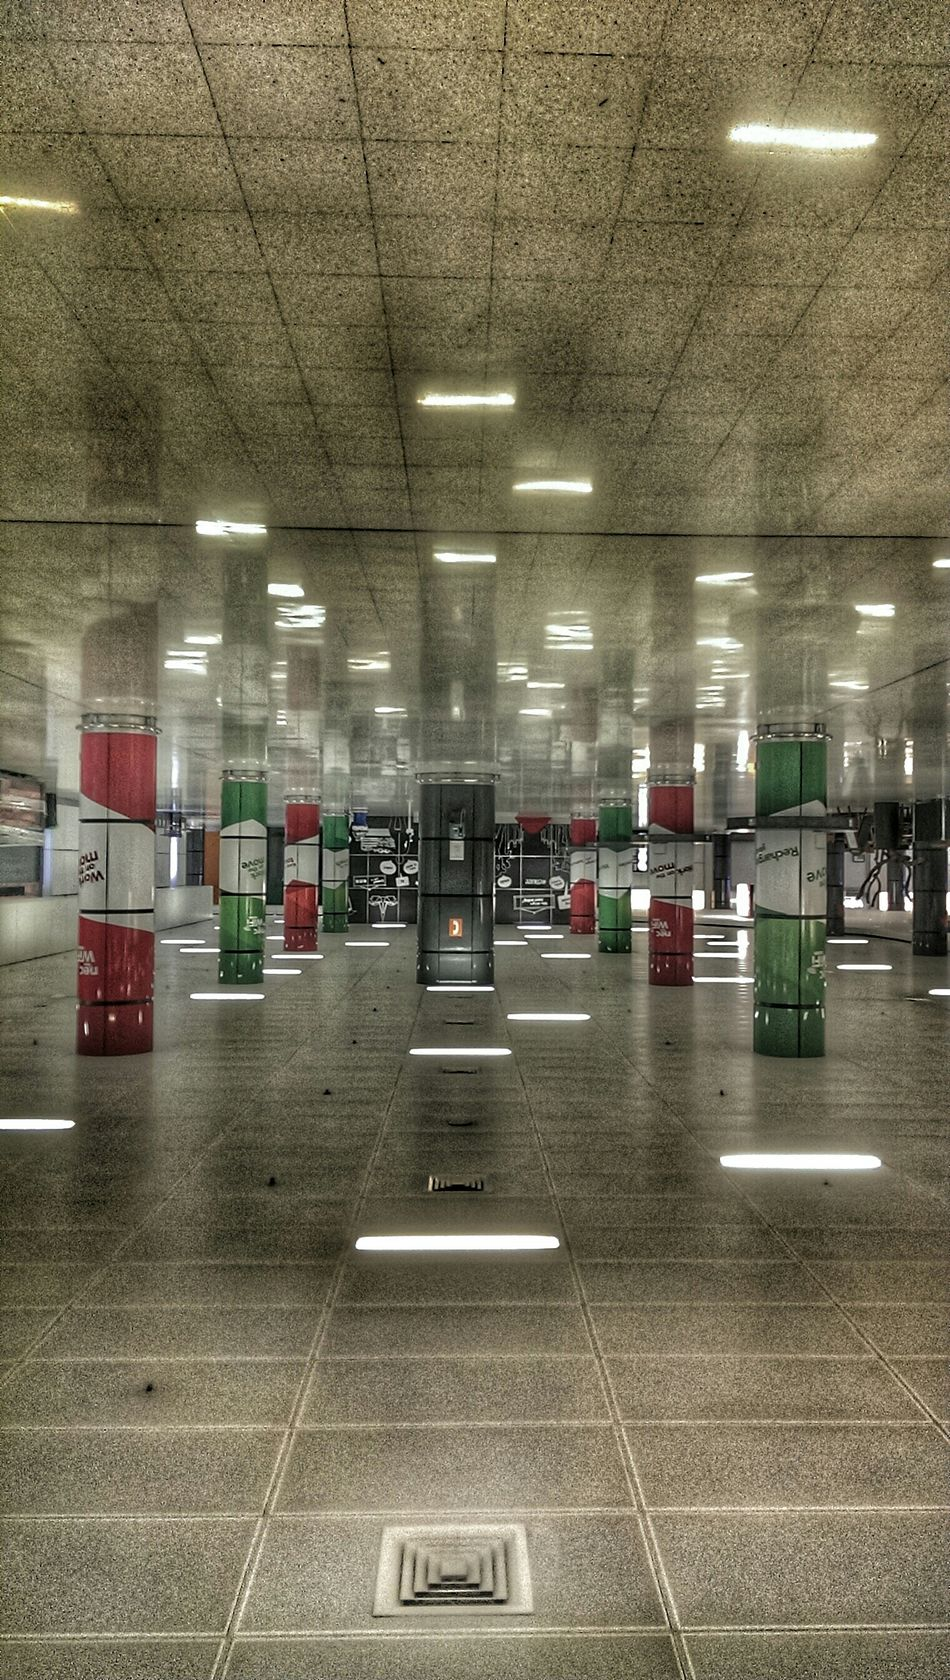 Flipped For My Friends That Connect Topview Reflection_collection EyeEm Best Shots - Reflections National Exhibition Centre Htc One M8 Empty Places In Front Of Me